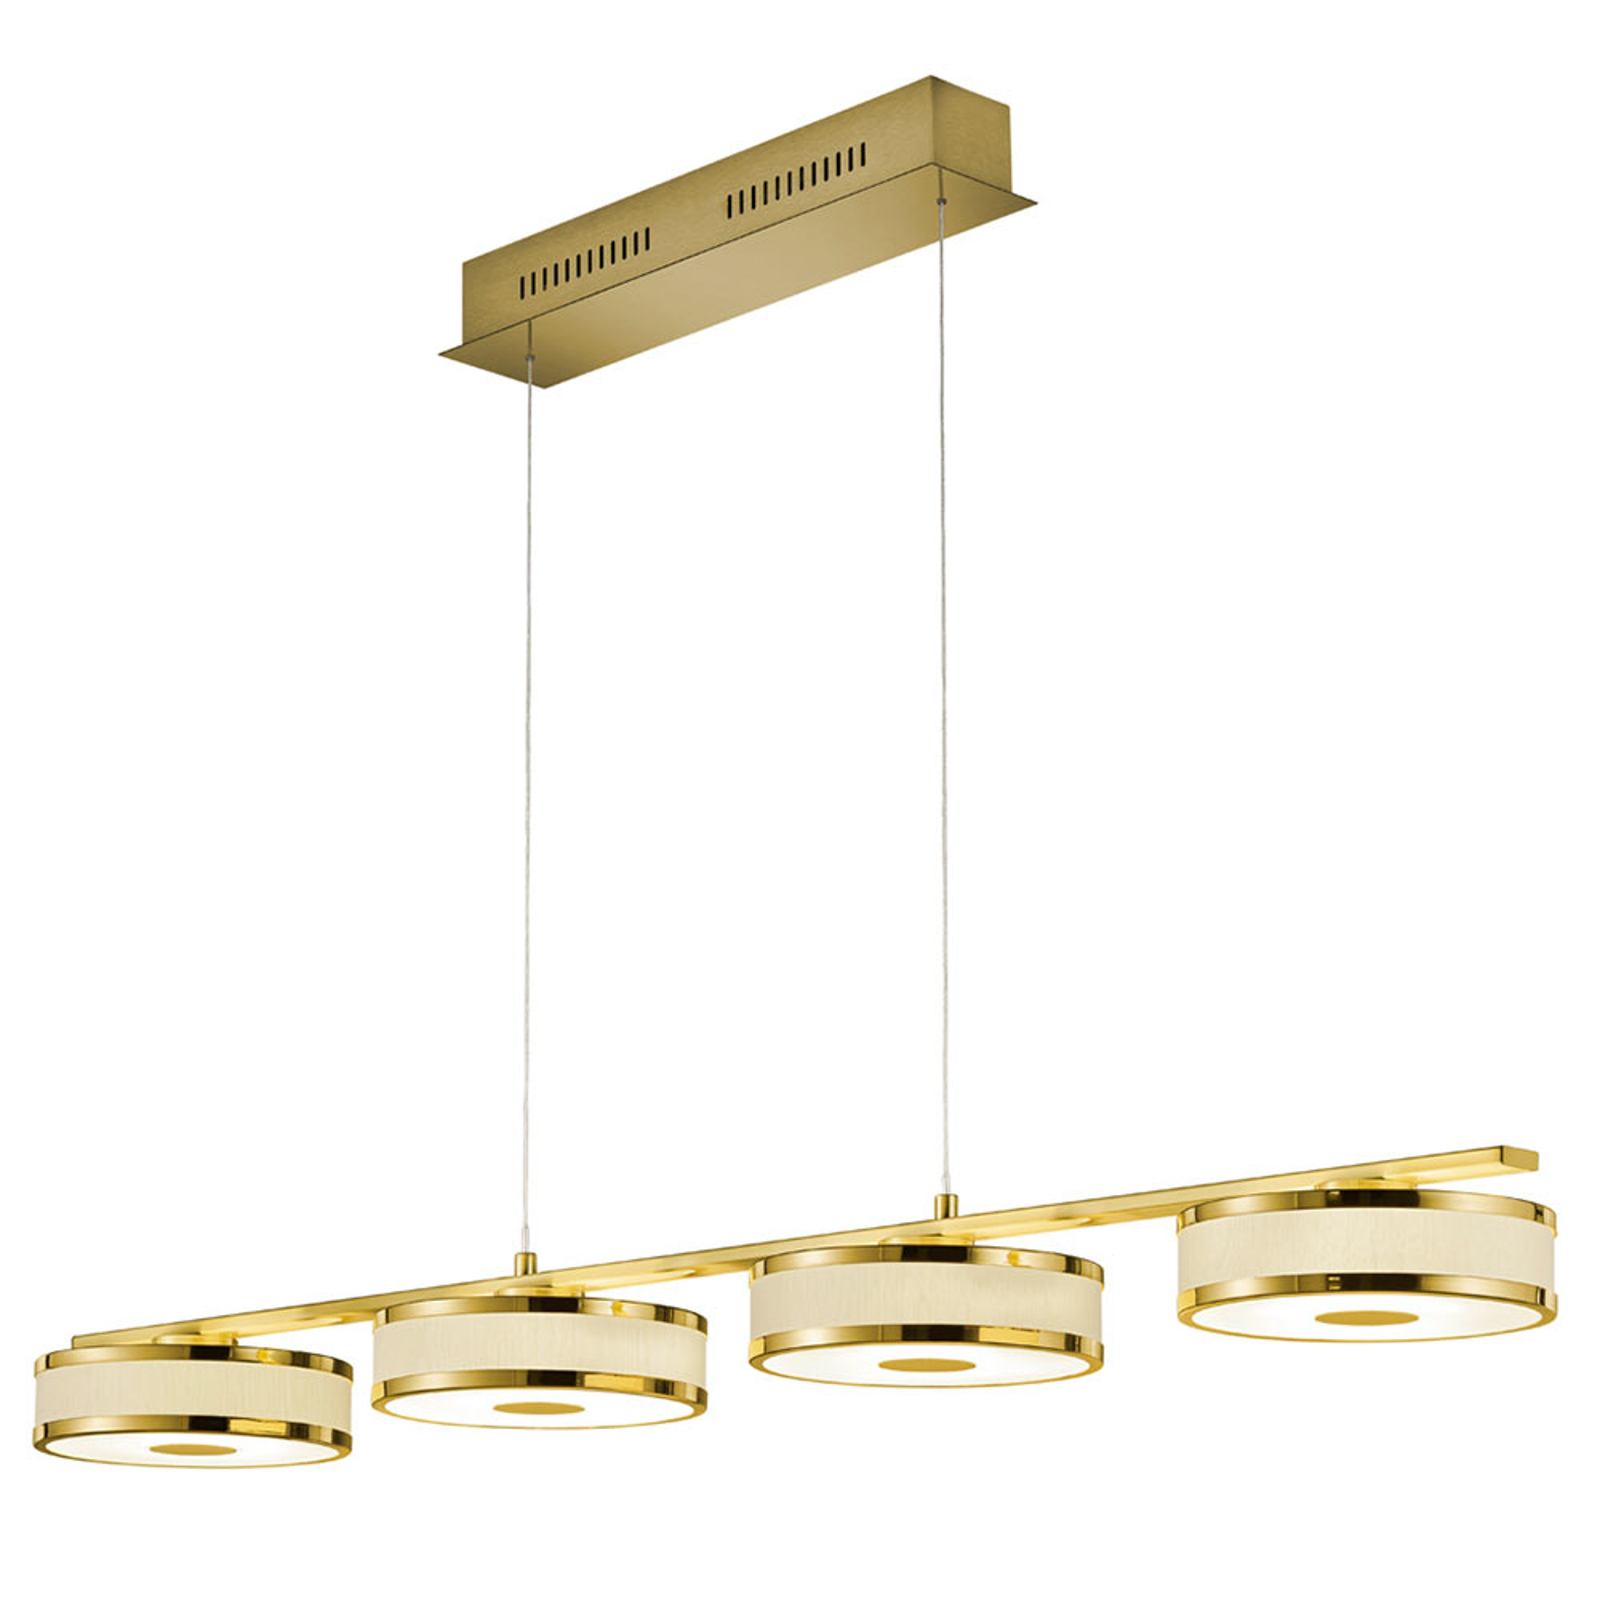 LED hanglamp Agento, messing, 4-lamps